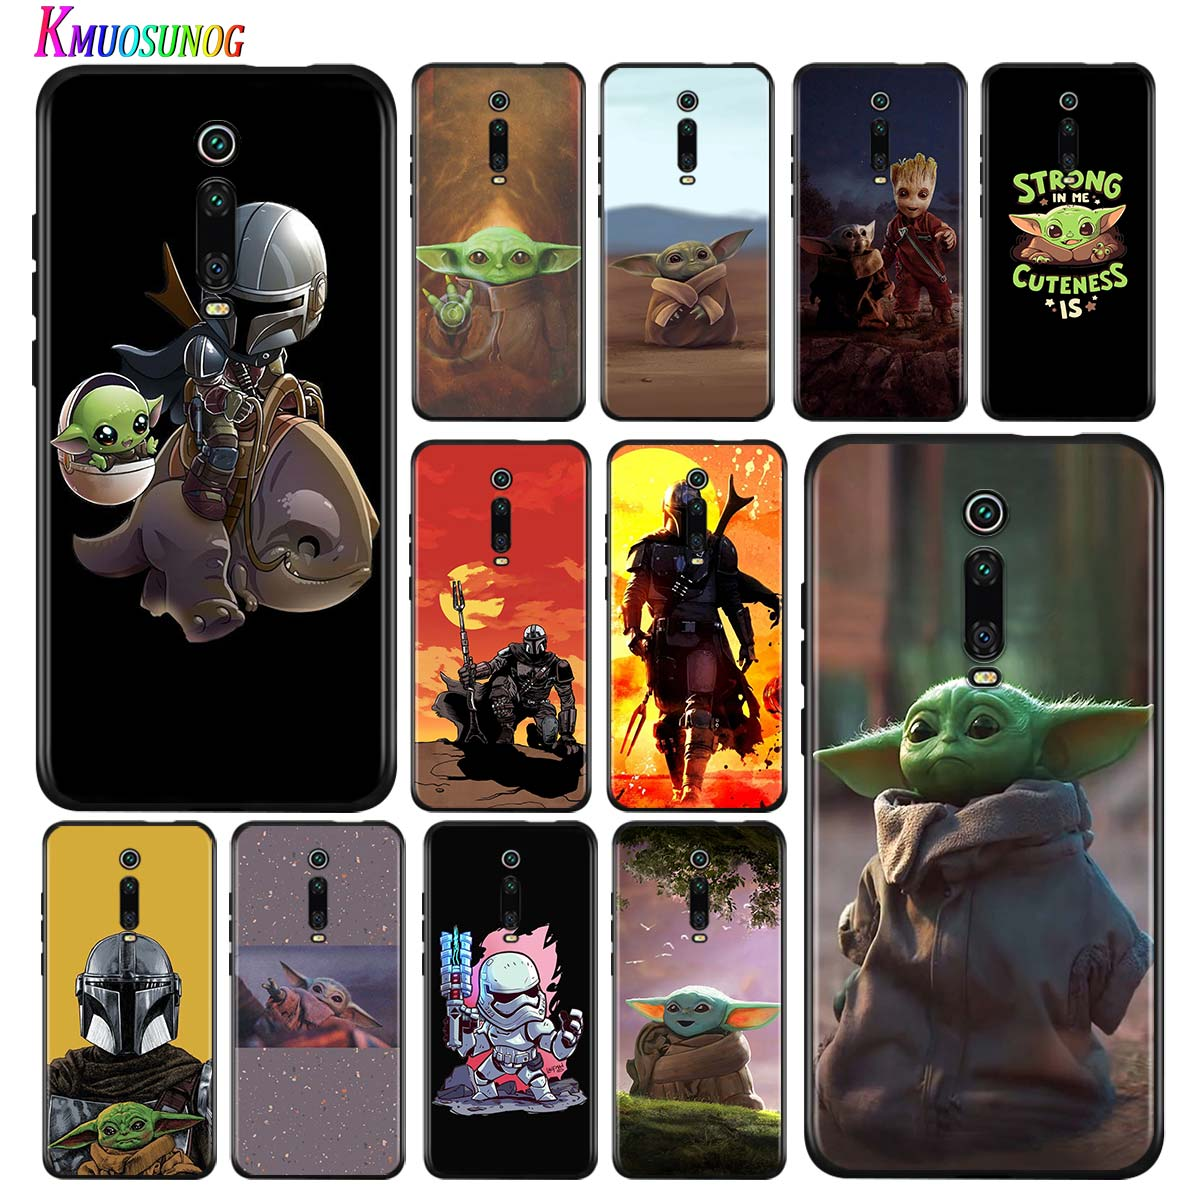 Silicone Cover Baby yoda The Mandalorian for Xiaomi Redmi Note 5 4X 4 K20 Pro 8 8A 7A 6A 6 S2 5A GO Plus Phone Case image